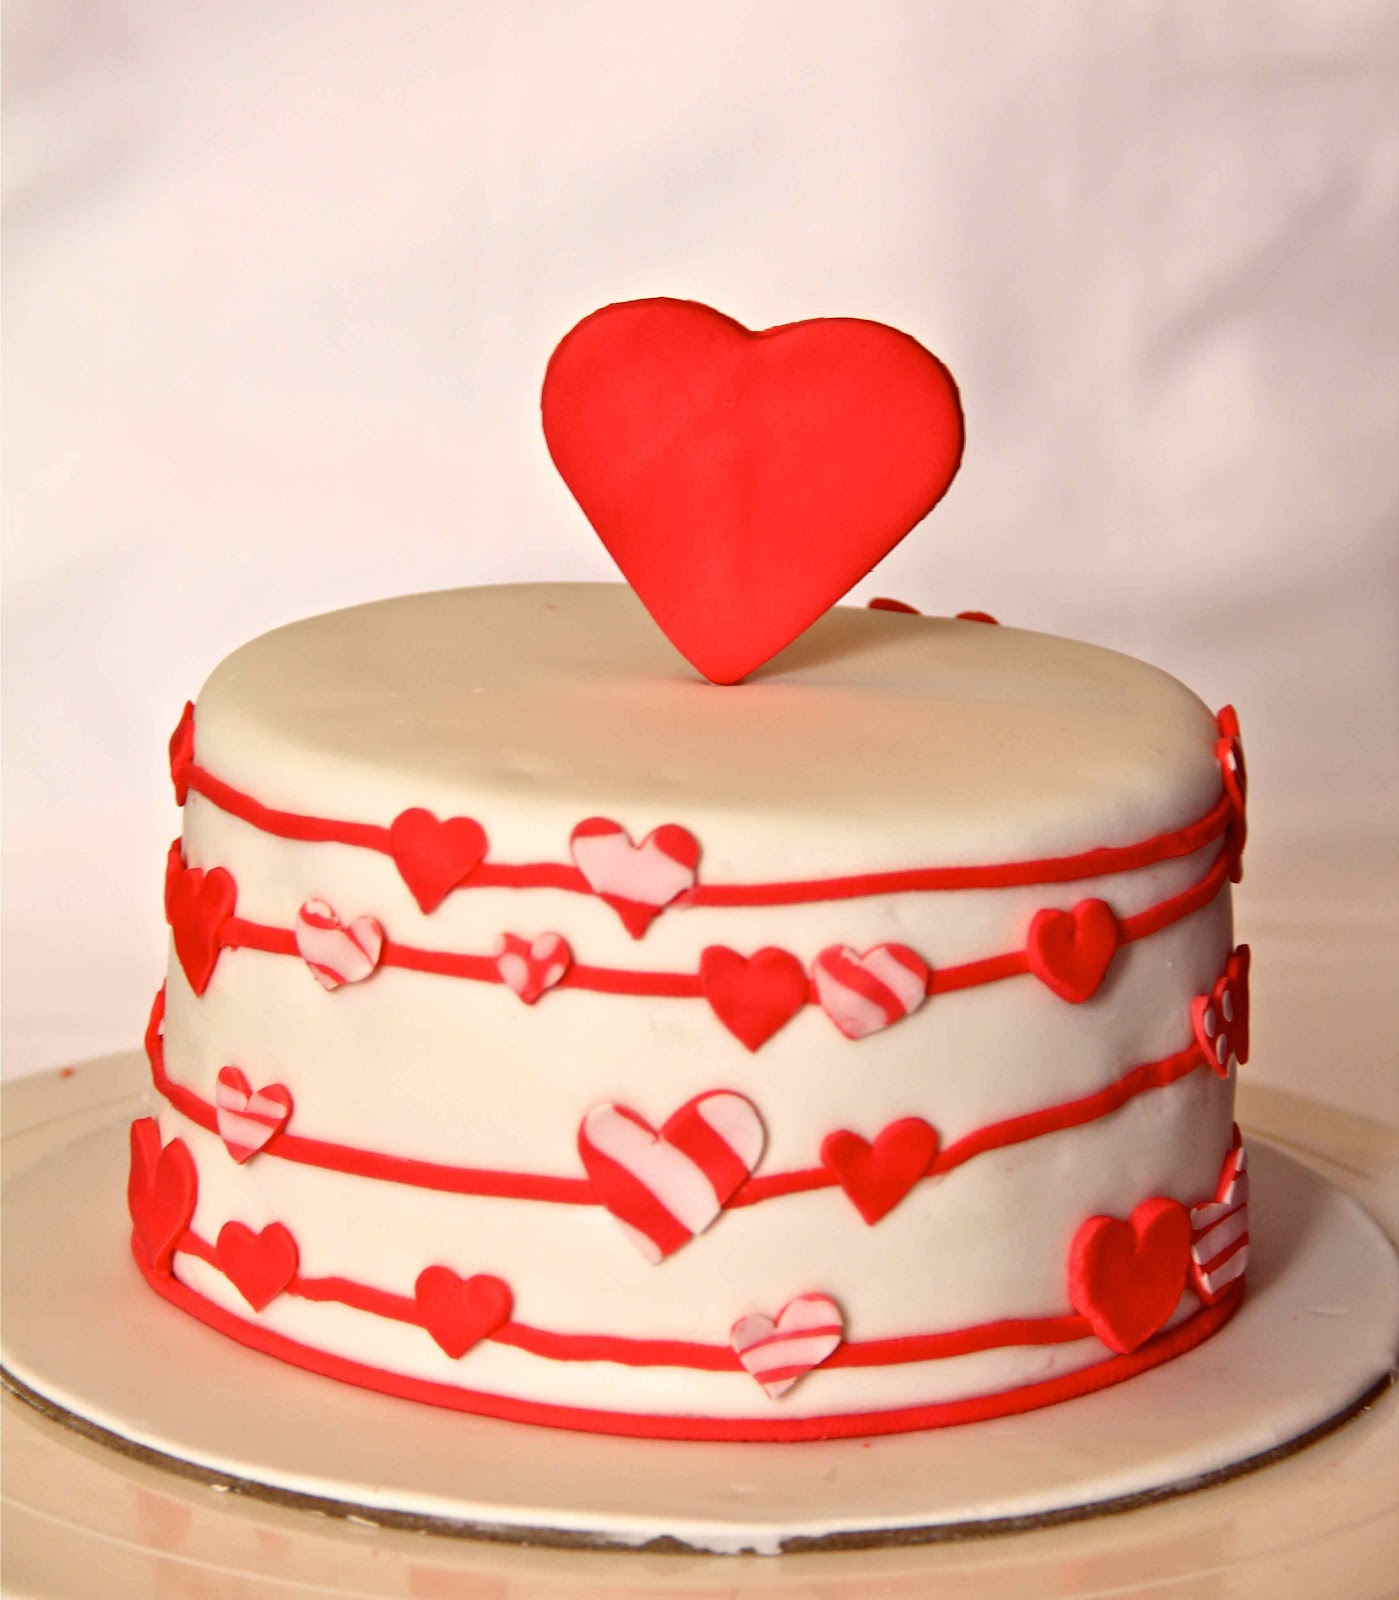 Valentines Cake Bakerz Dad: Love is in...